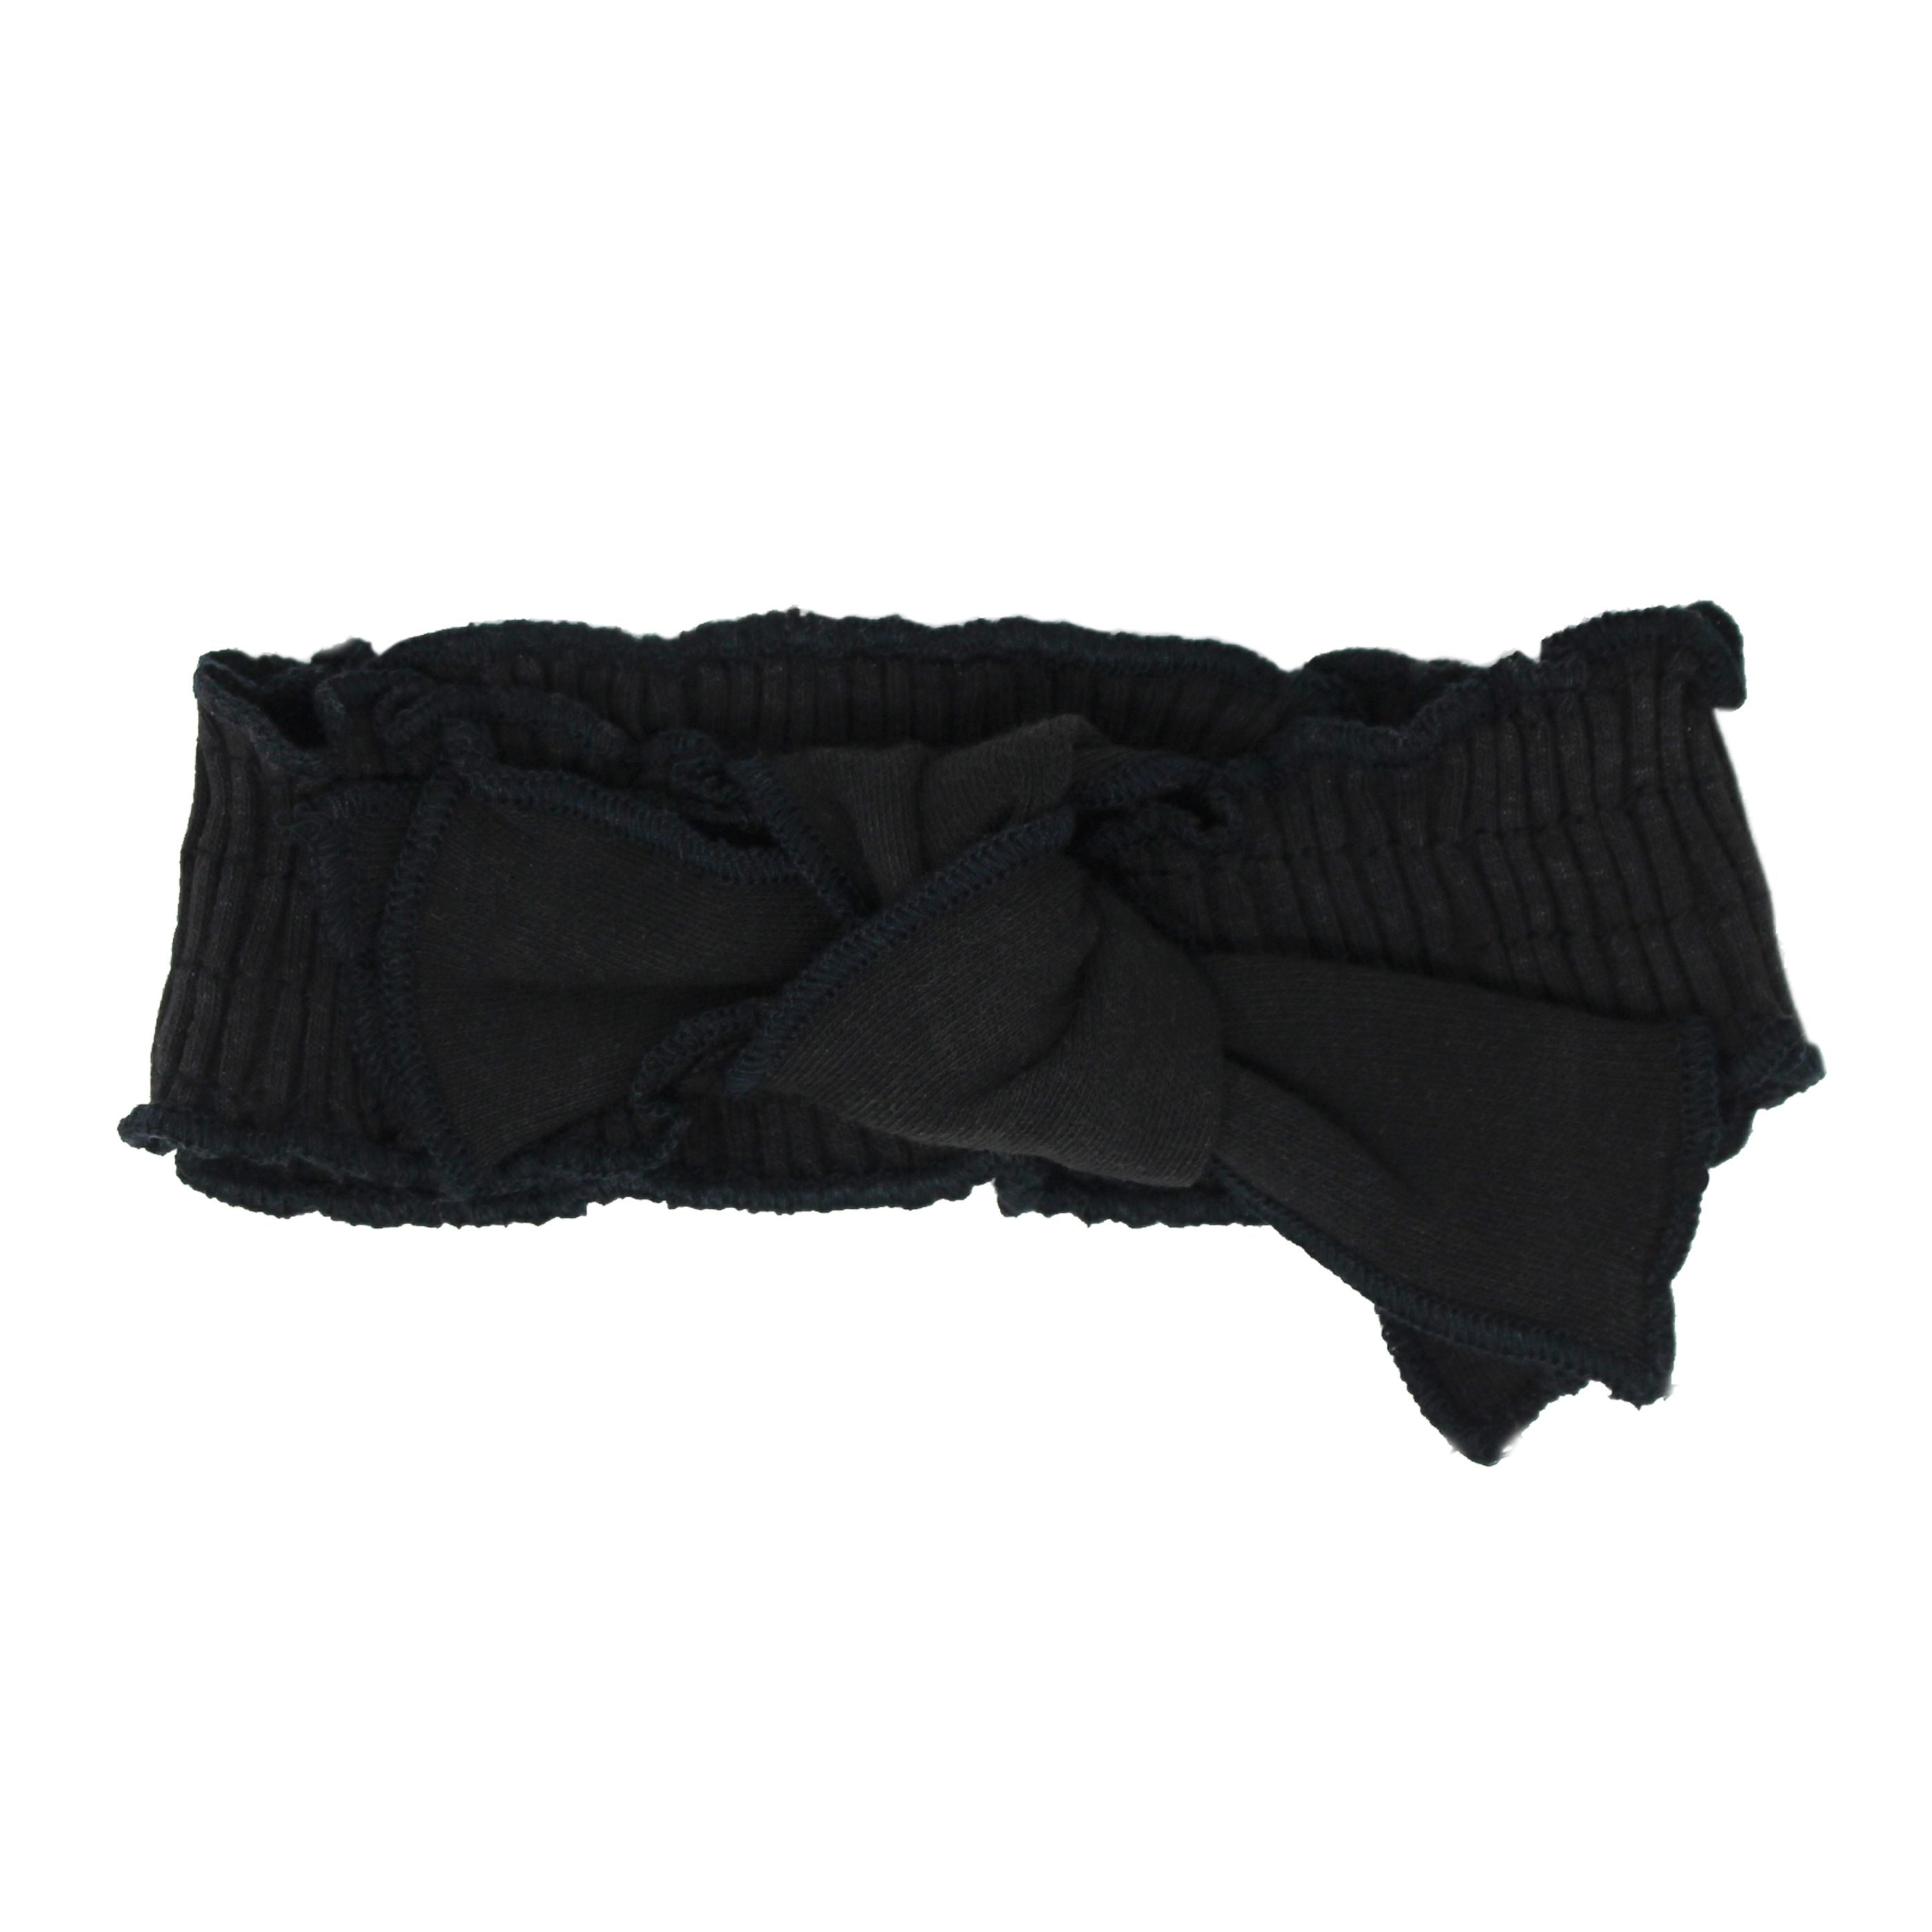 Black Smocked Tied Headband